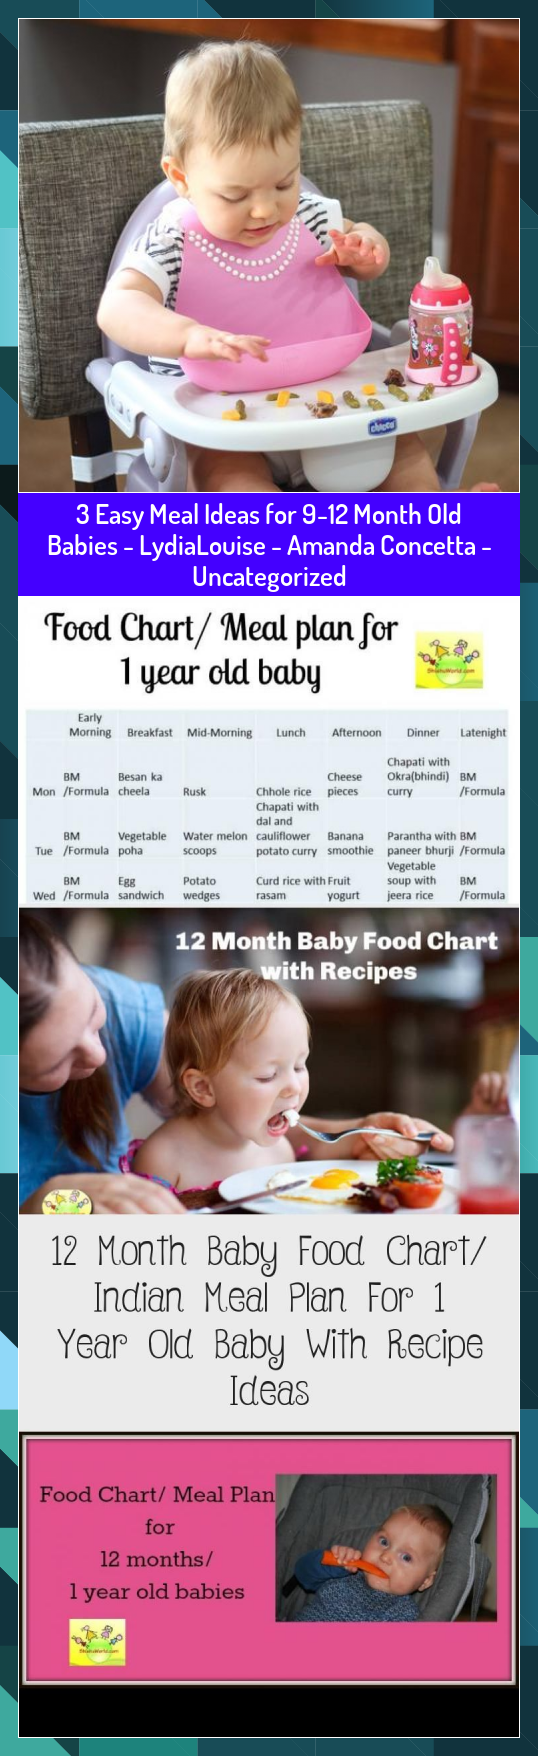 3 Easy Meal Ideas for 912 Month Old Babies  LydiaLouise  Amanda Concetta  Uncategorized